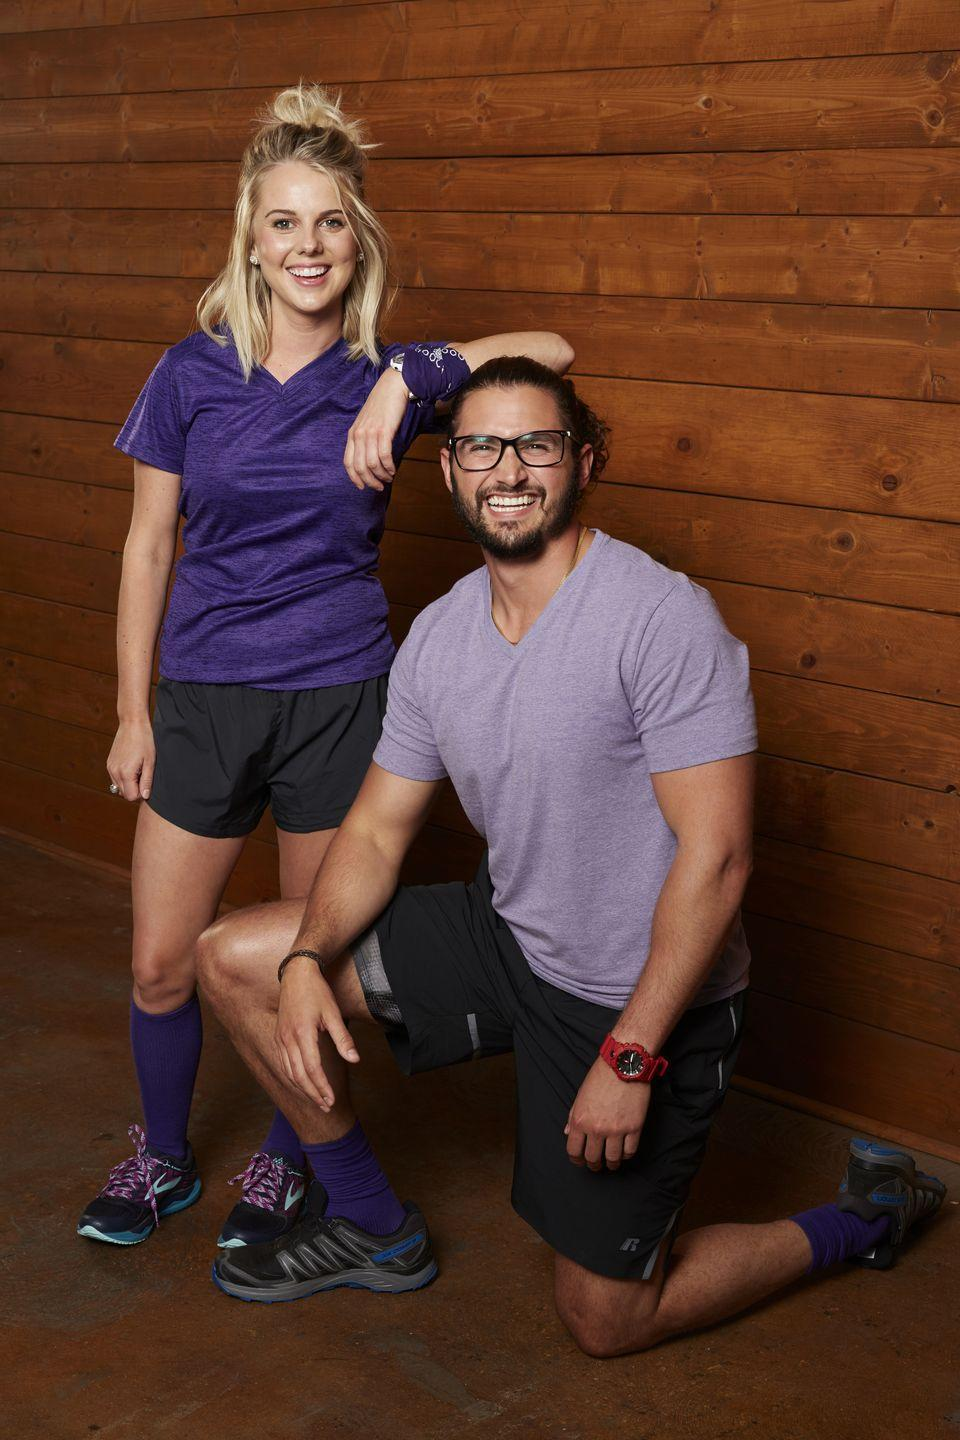 """<p>Nicole Franzel and Victor Arroyo met when they were housemates on season 18 of <em>Big Brother. </em>They didn't date on the show, but their relationship evolved after the season wrapped. Victor <a href=""""https://www.bustle.com/entertainment/nicole-franzel-victor-arroyos-wedding-updates-show-they-have-some-tough-choices-to-make-17043439"""" rel=""""nofollow noopener"""" target=""""_blank"""" data-ylk=""""slk:proposed to Nicole"""" class=""""link rapid-noclick-resp"""">proposed to Nicole</a> during a guest appearance on season 20. Since then, they competed as a team on <em>The Amazing Race</em>.</p>"""